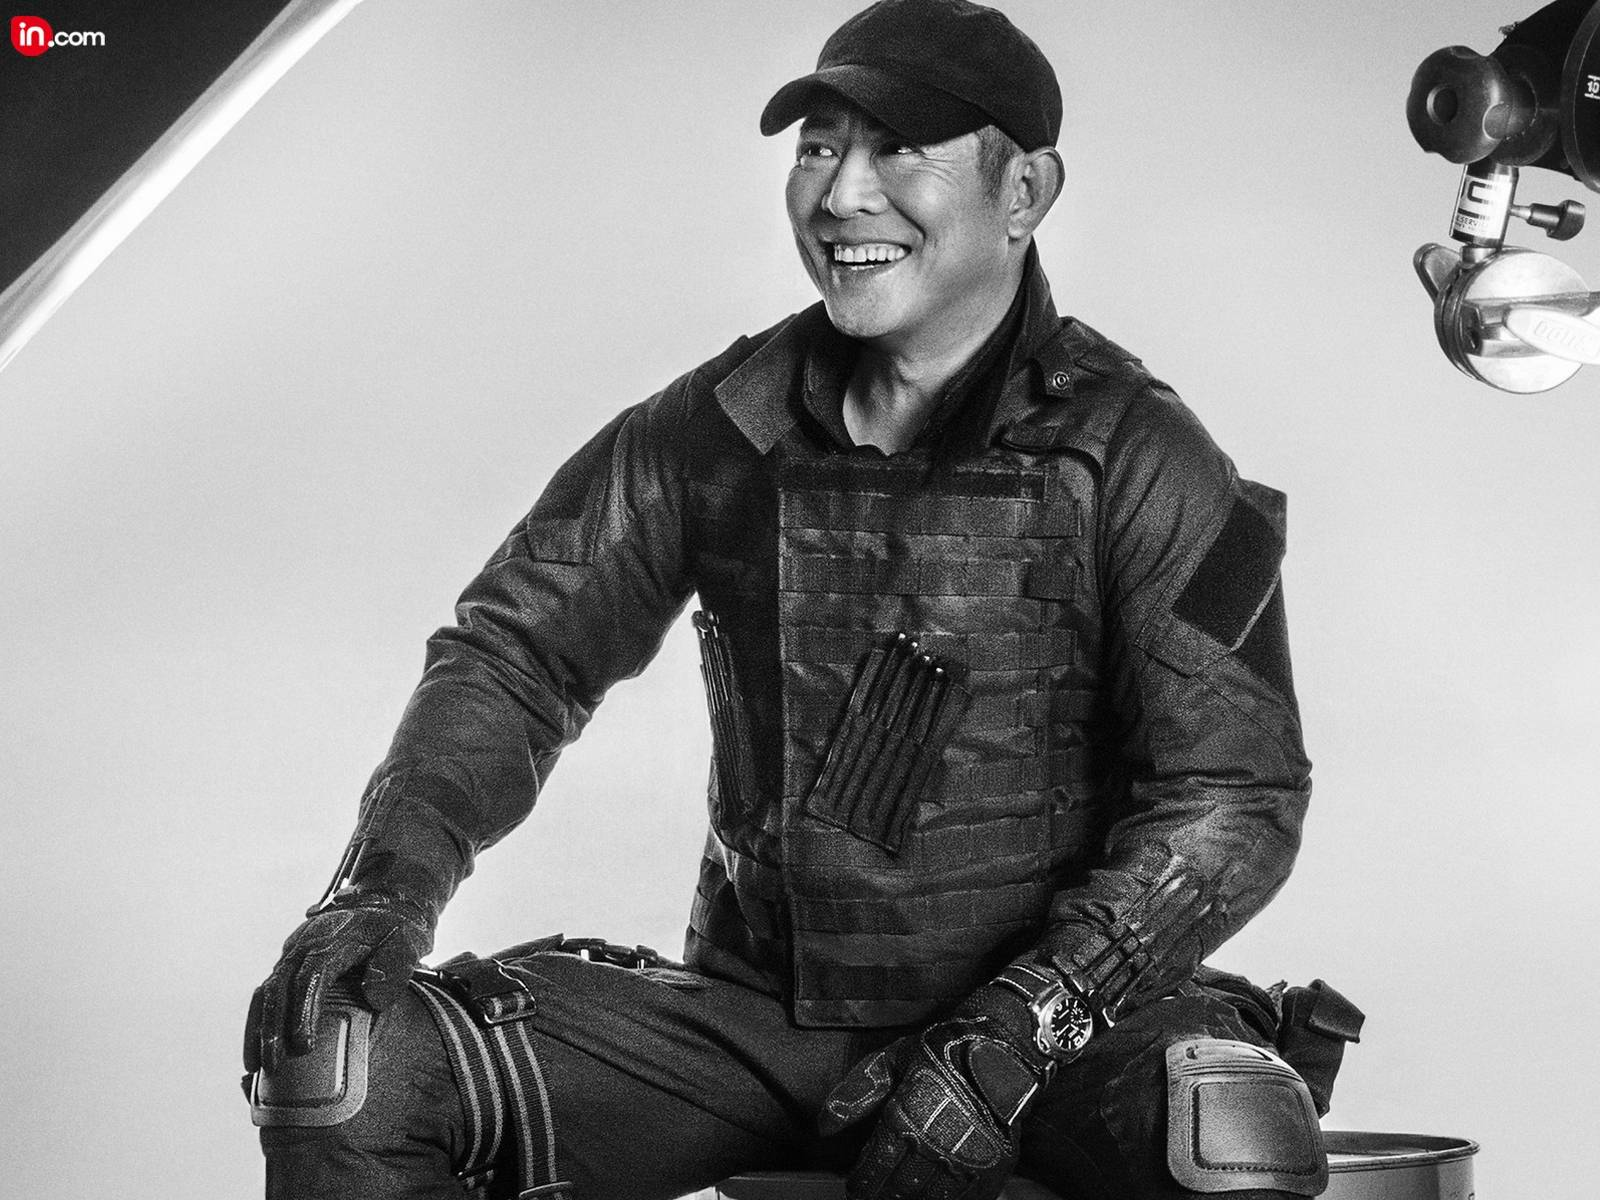 Jet Li Wallpapers High Resolution and Quality Download